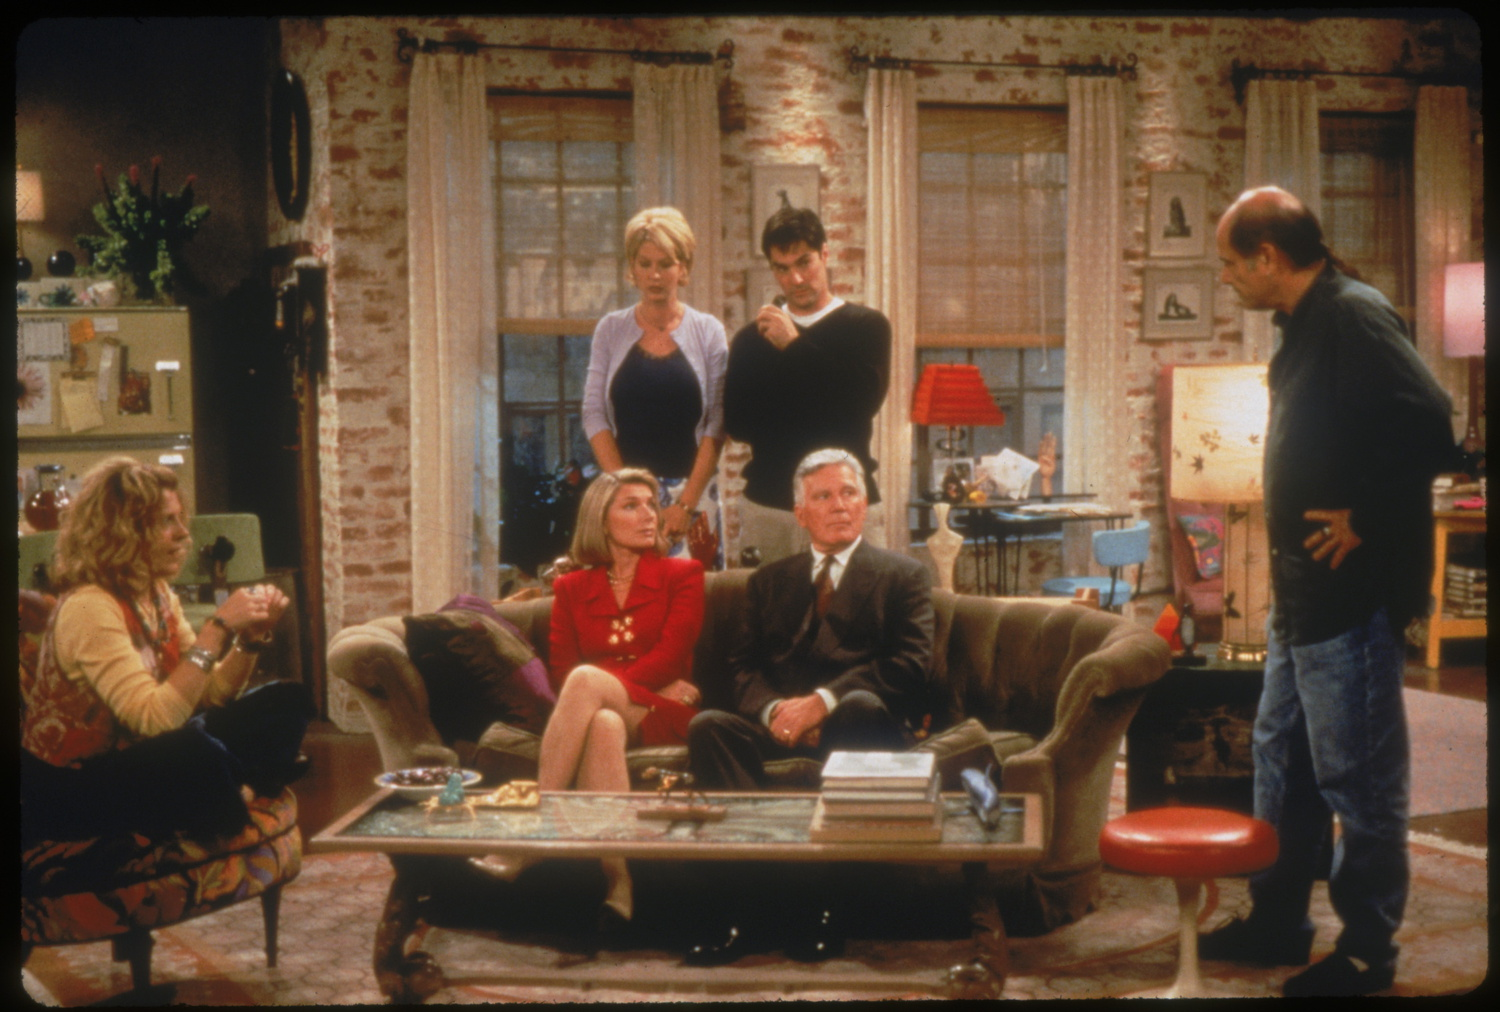 Dharma Greg Images Hd Wallpaper And Background Photos